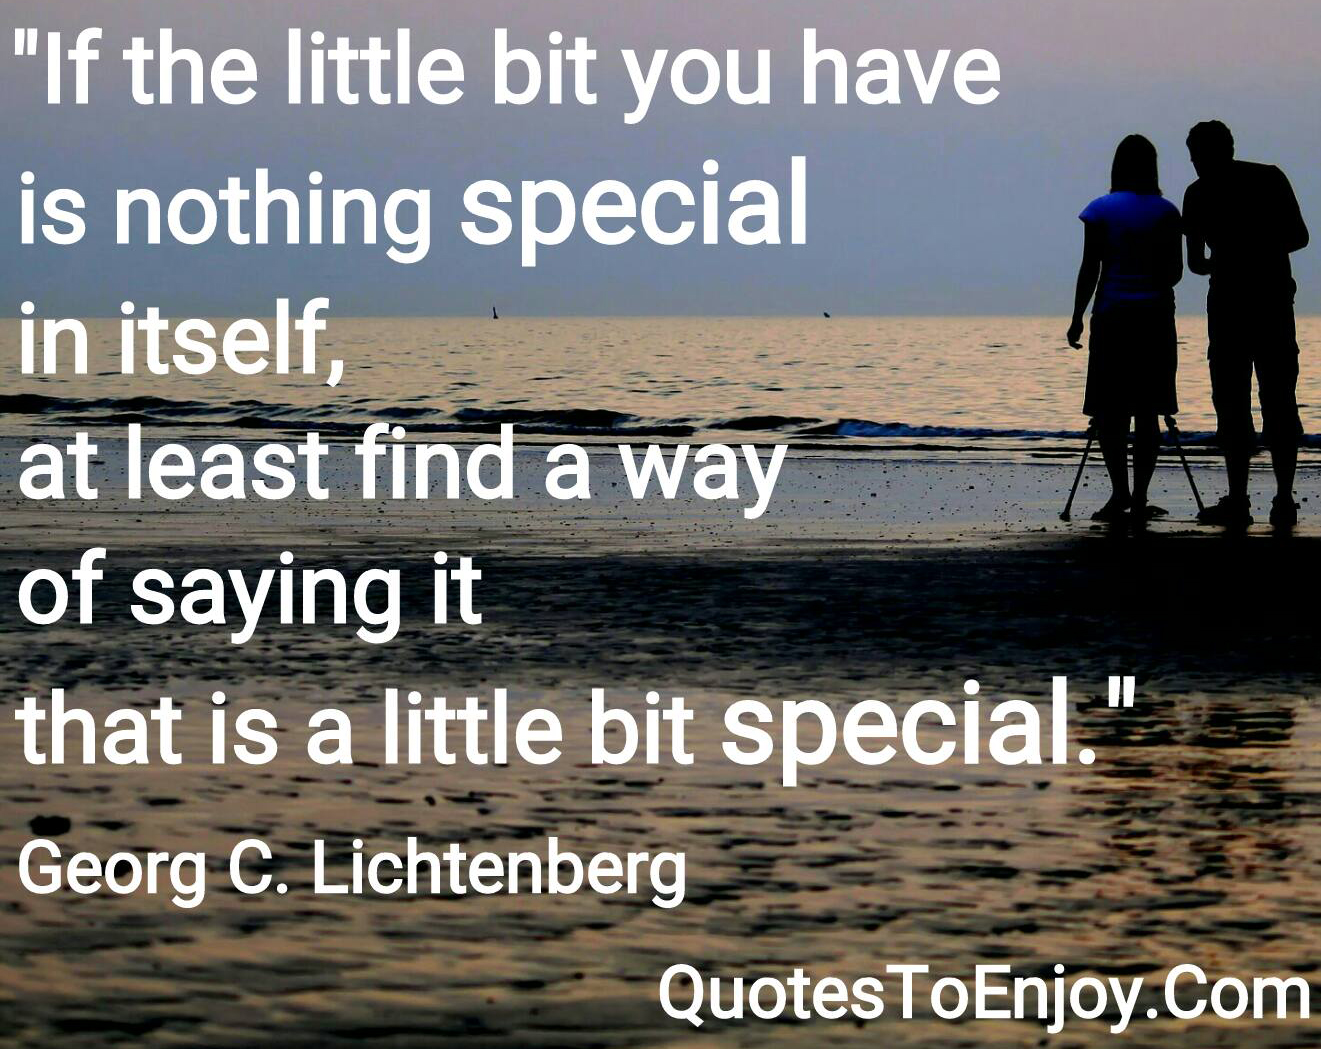 If the little bit you have is nothing special in itself, at least find a way of saying it that is a little bit special. Georg C. Lichtenberg